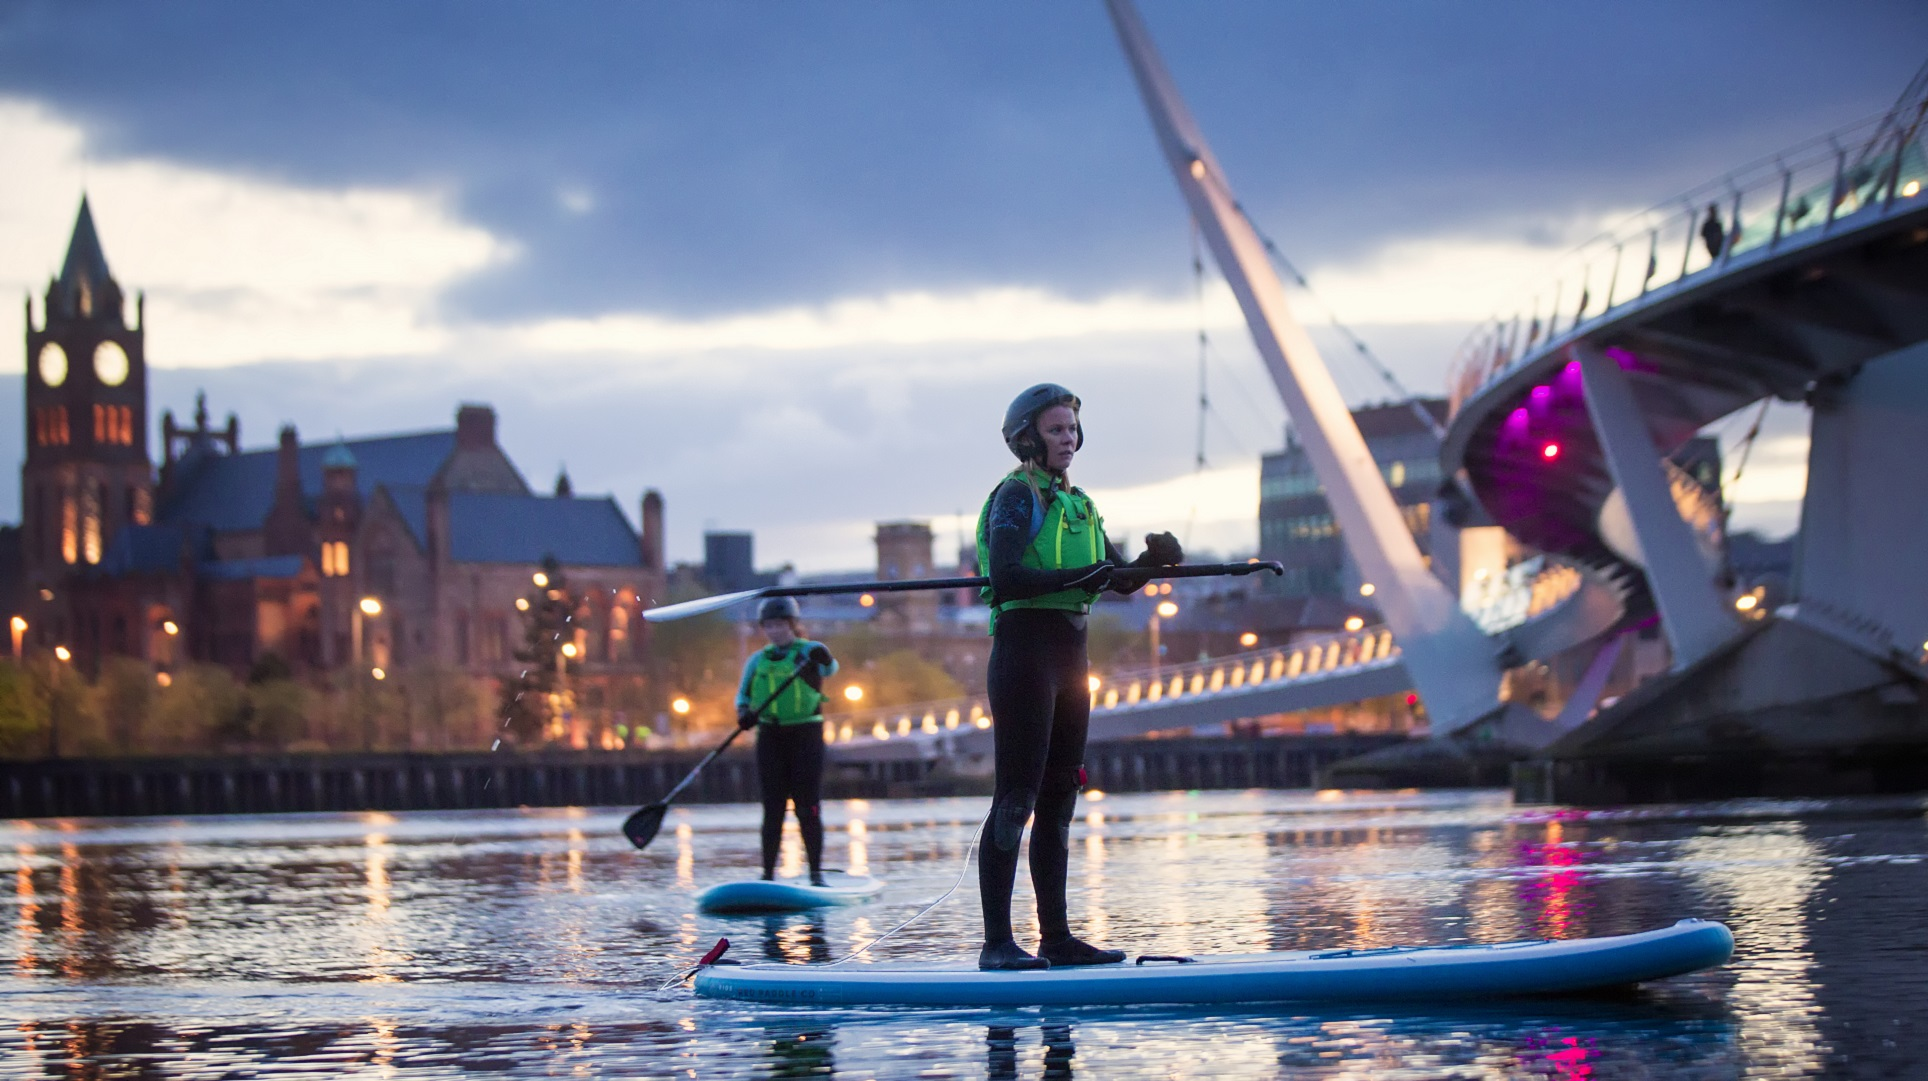 City Paddle Board Derry